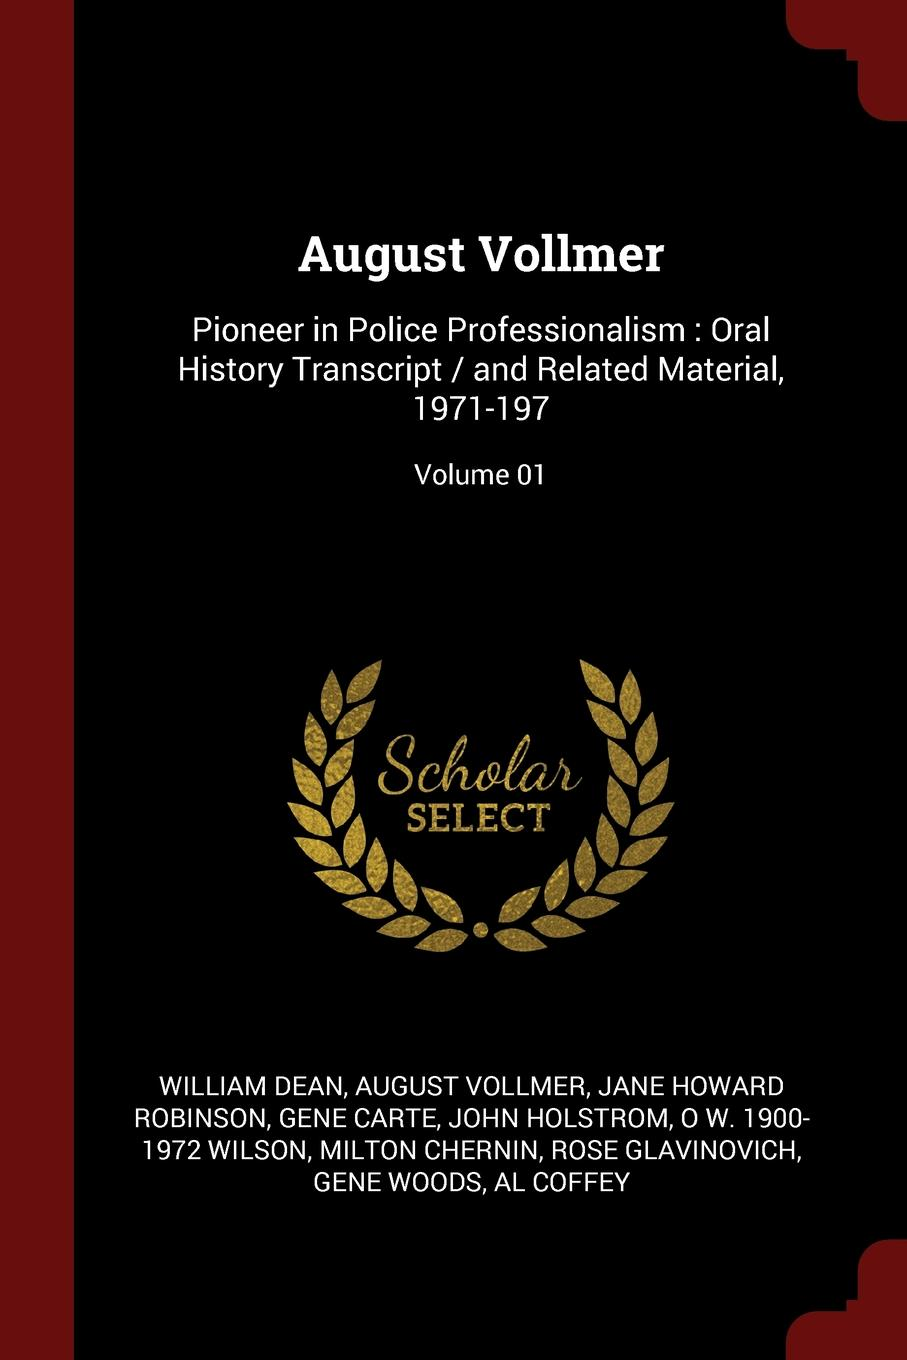 August Vollmer. Pioneer in Police Professionalism : Oral History Transcript / and Related Material, 1971-197; Volume 01